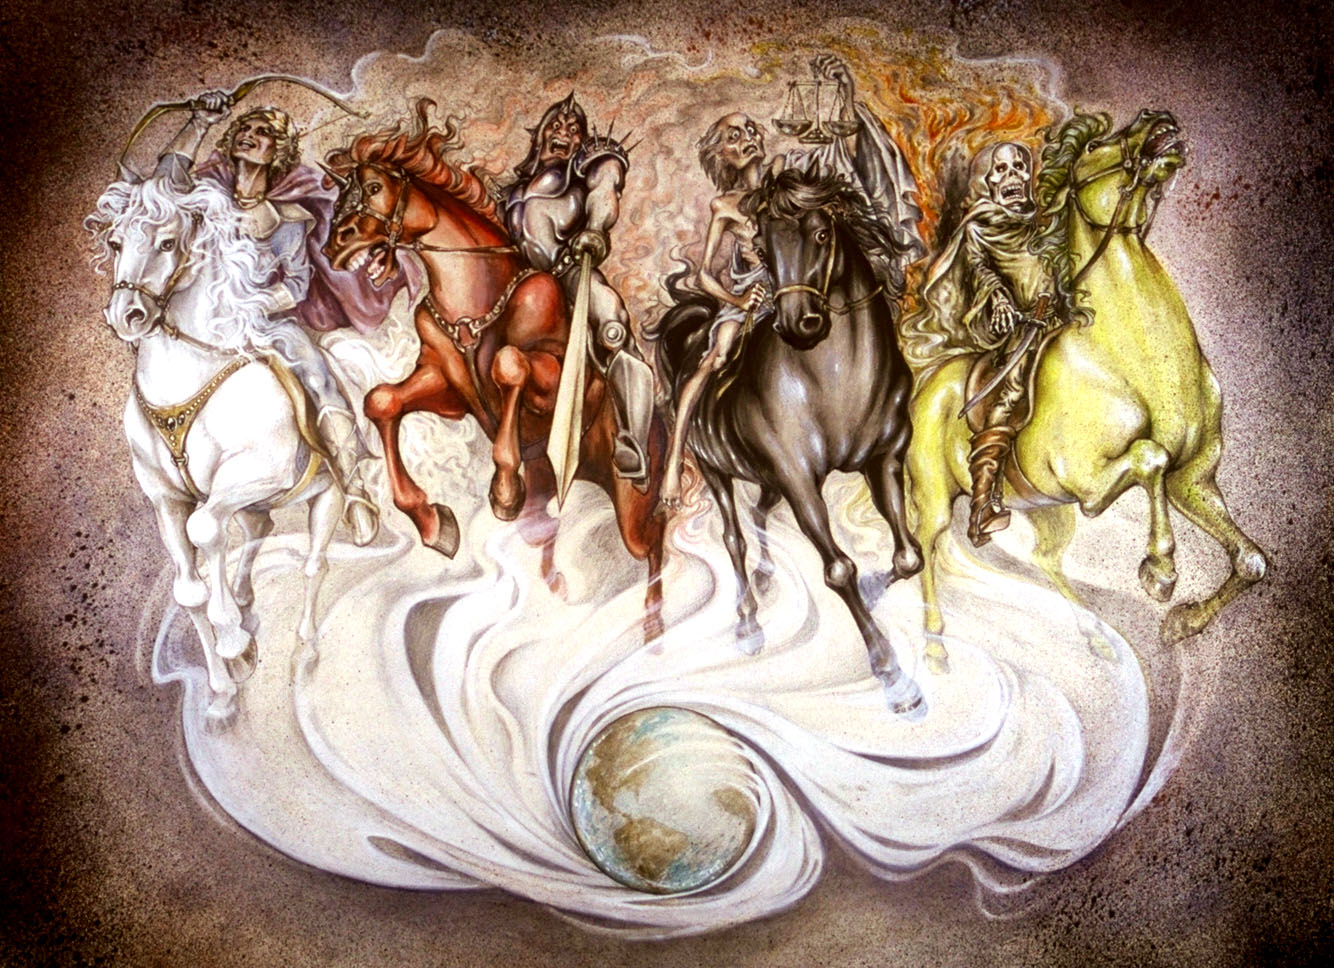 Four Horsemen Of The Apocalypse clipart #13, Download drawings